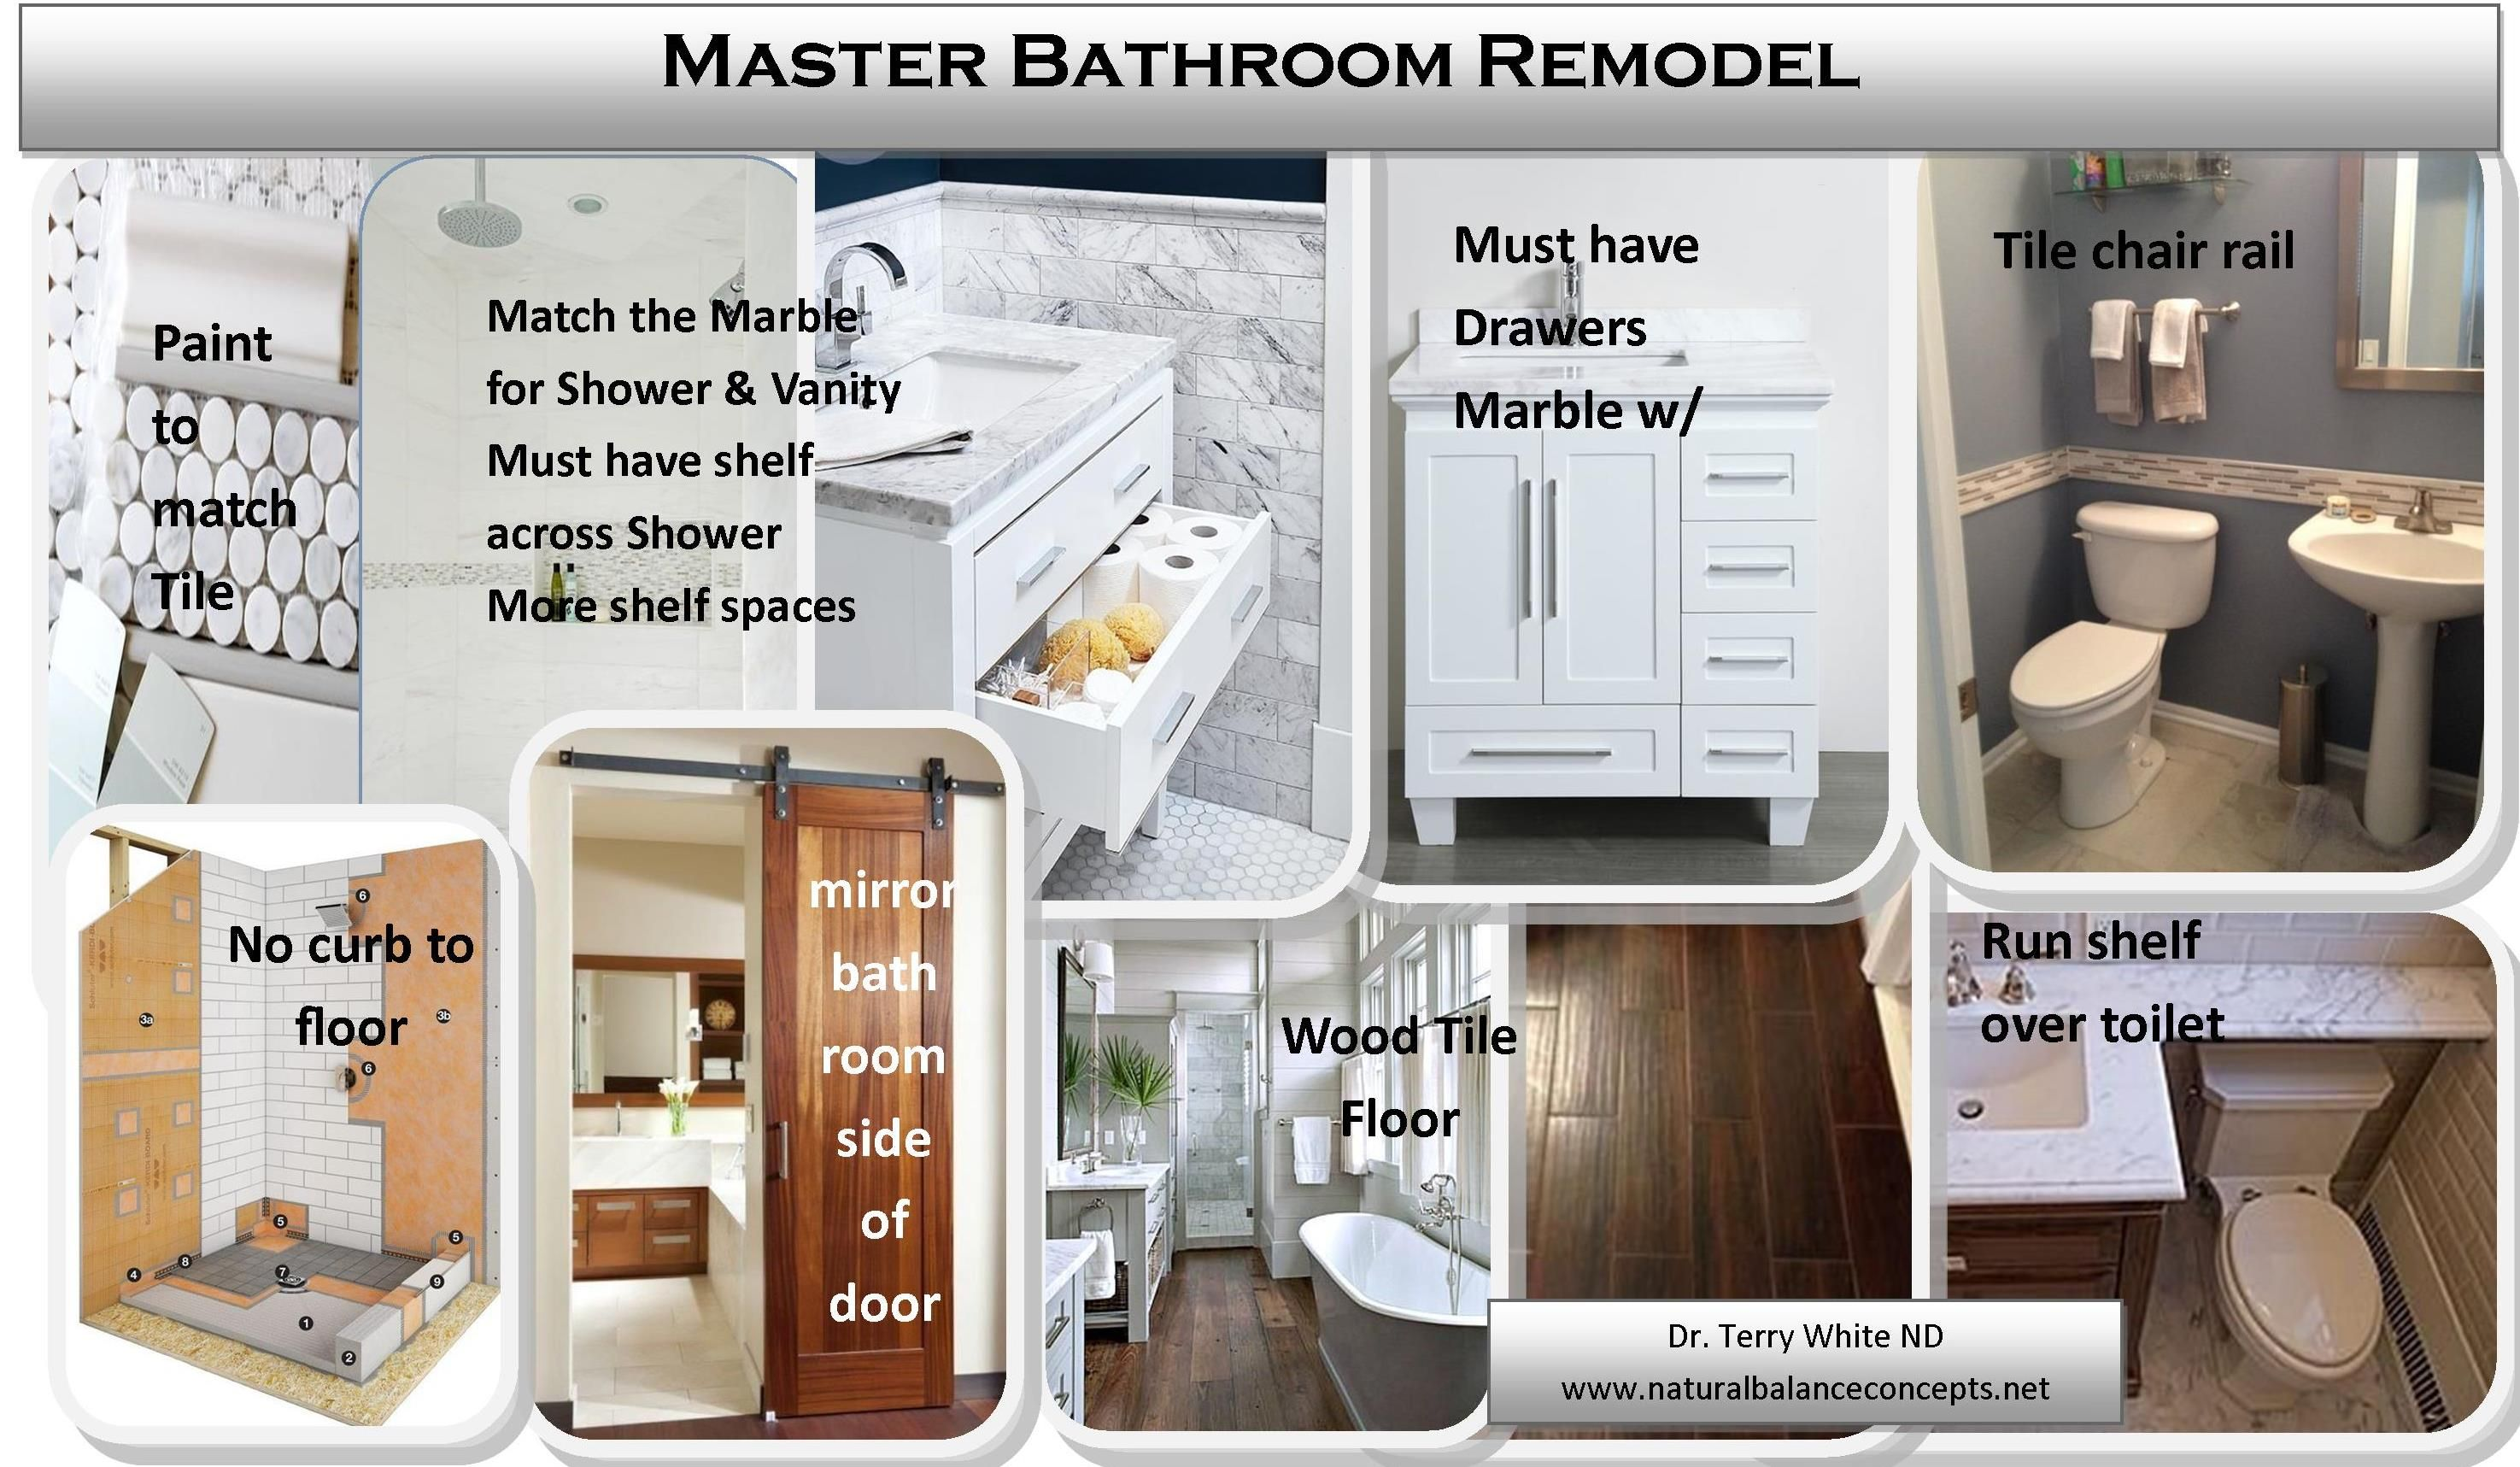 Master Bathroom Remodel - Gut it all and install new Mold resistant ...